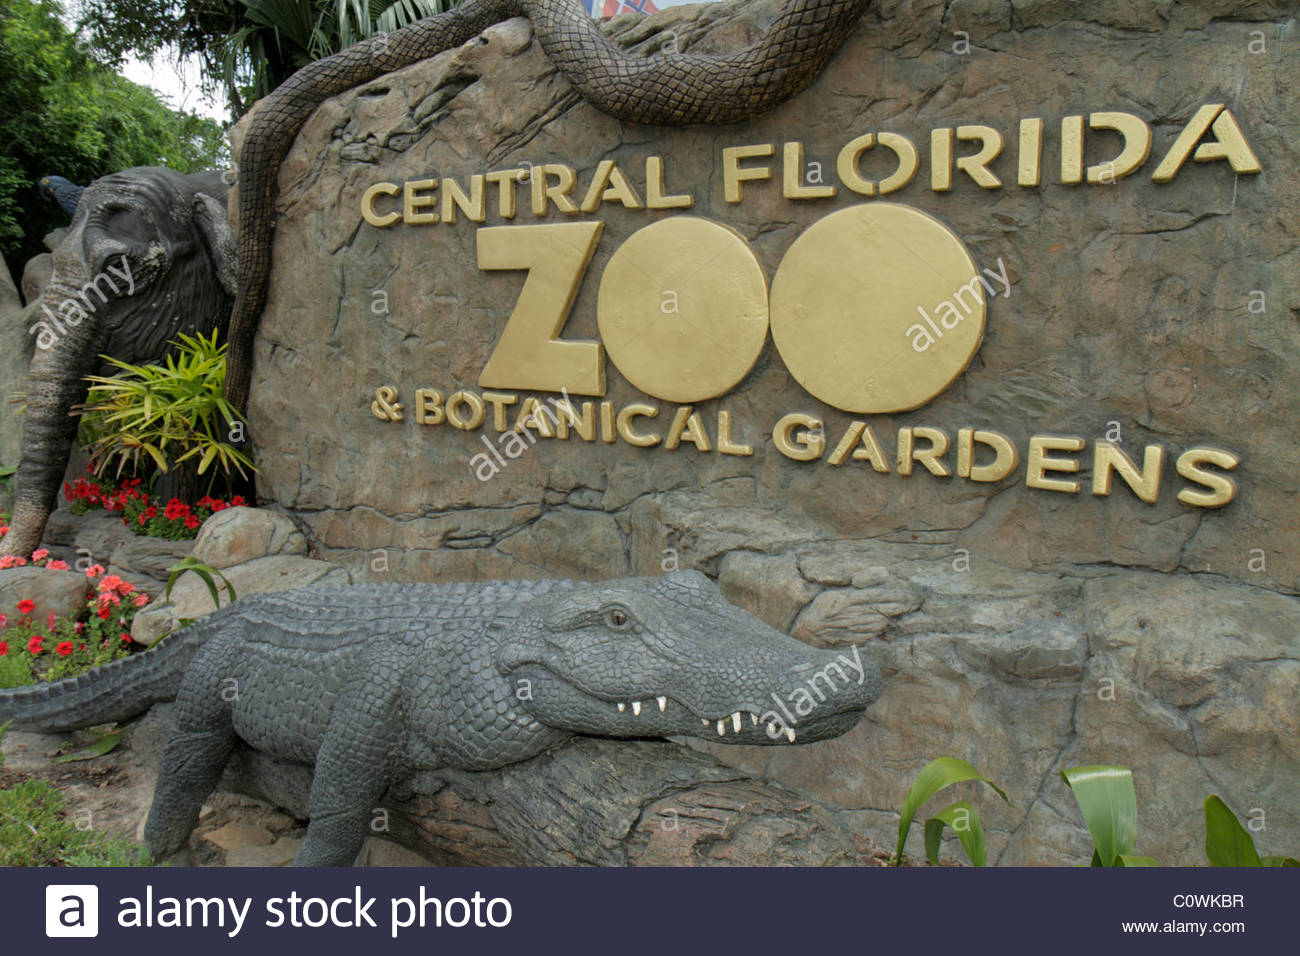 Orlando Florida Sanford Central Florida Zoo And Botanical Gardens Stock Photo 34984763 Alamy